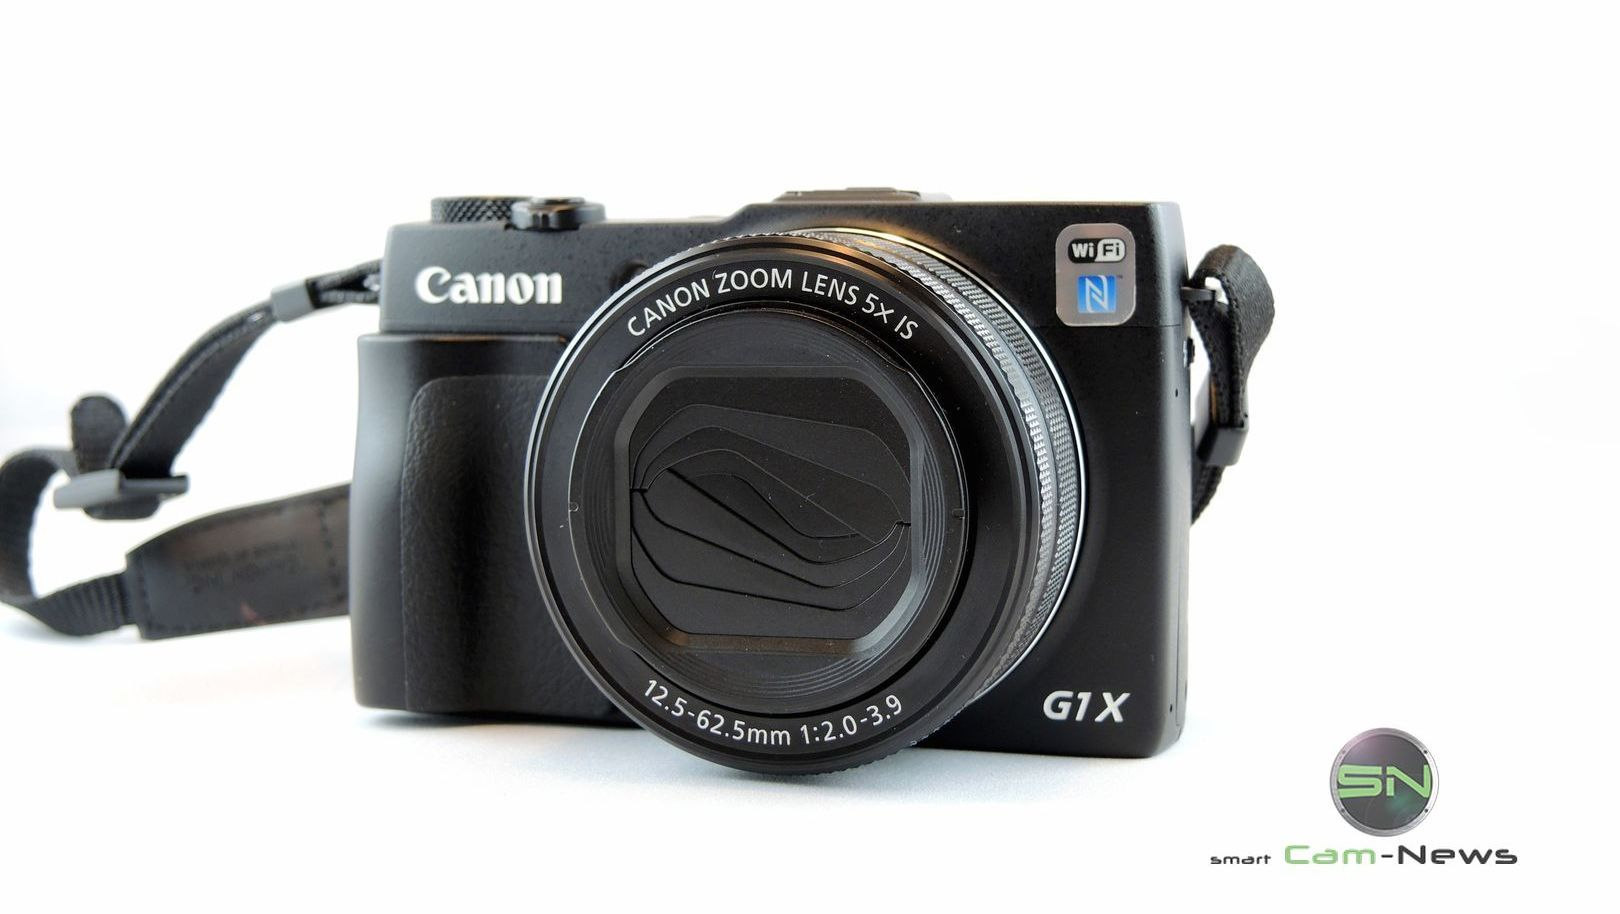 HighEnd Kompakte - Canon G1x mark II - SmartCamNews